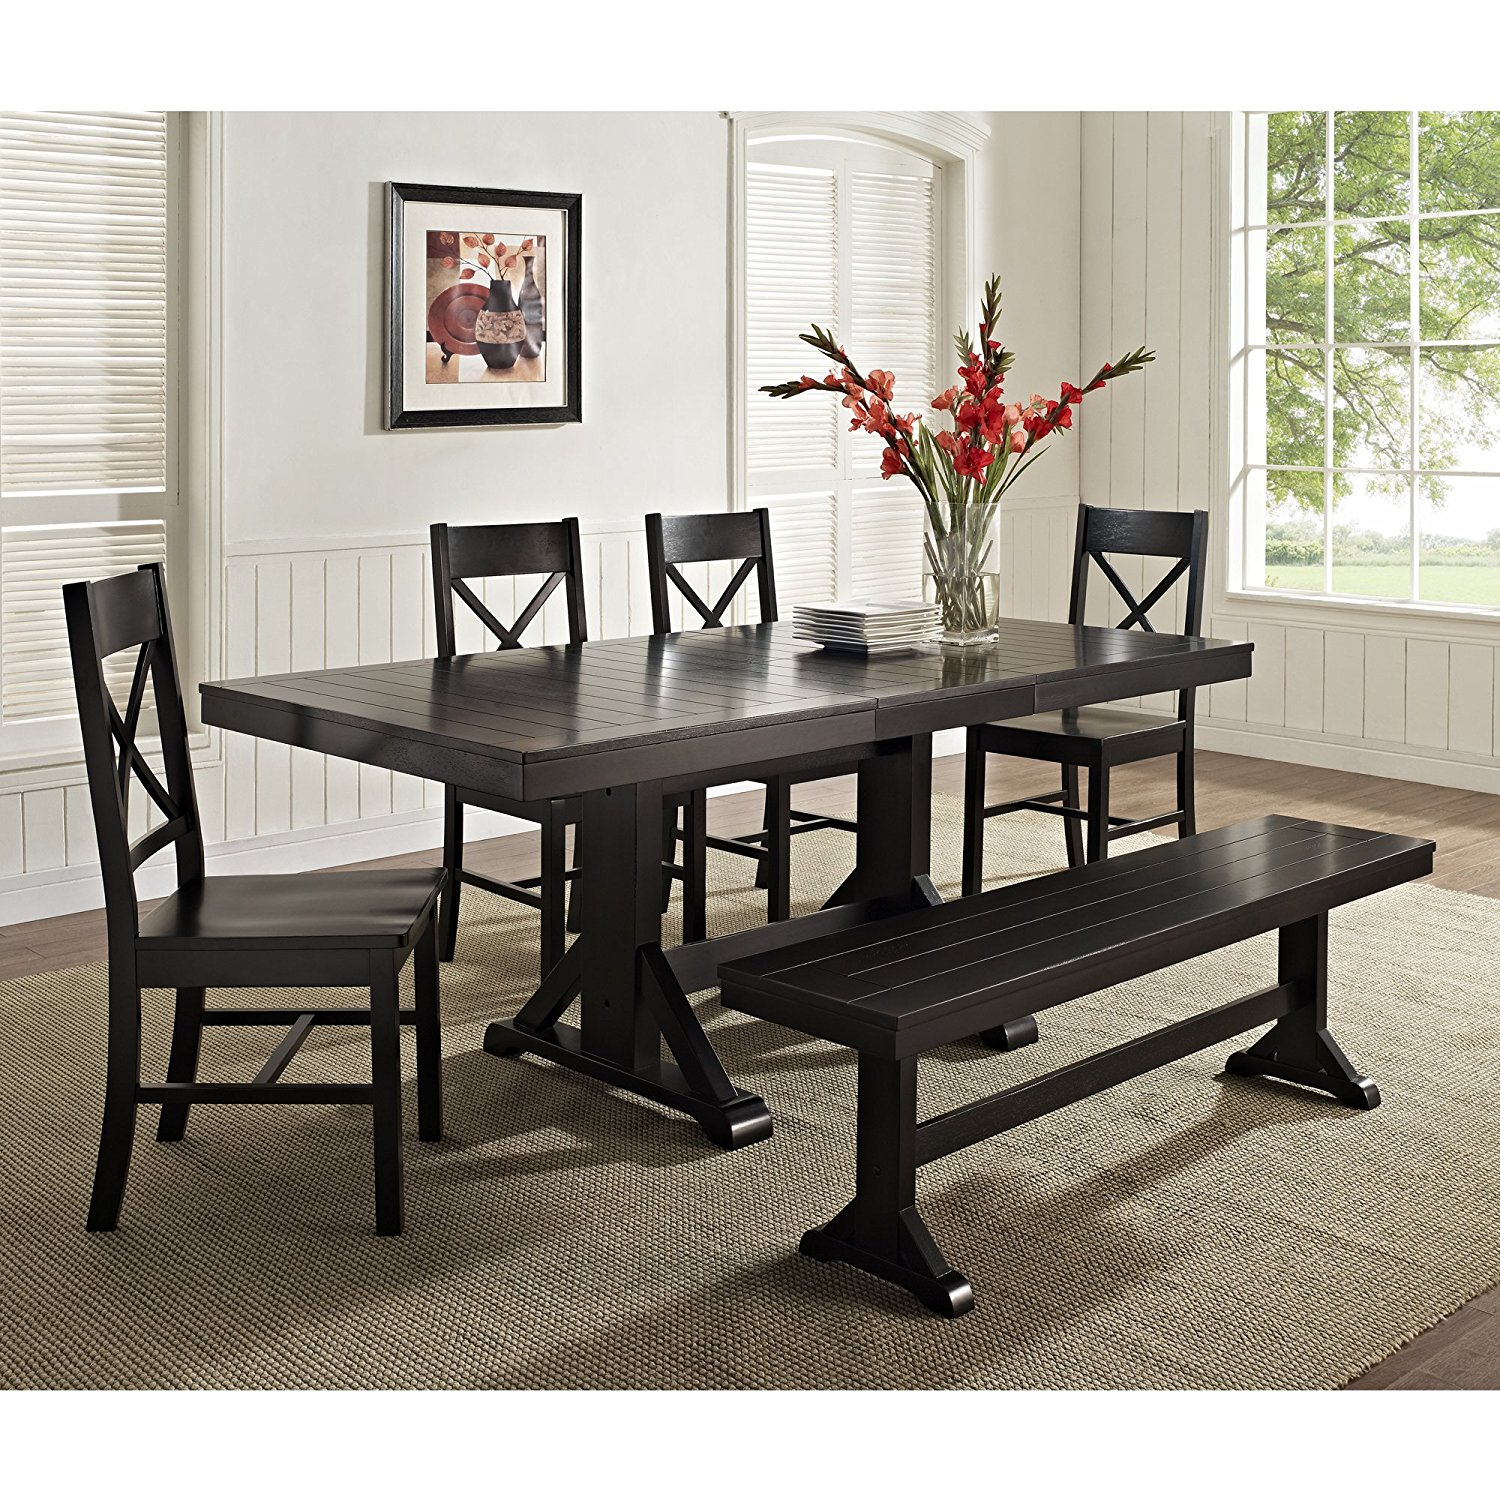 Dining room black dining table bench best gallery of tables furniture room GMCXUIG